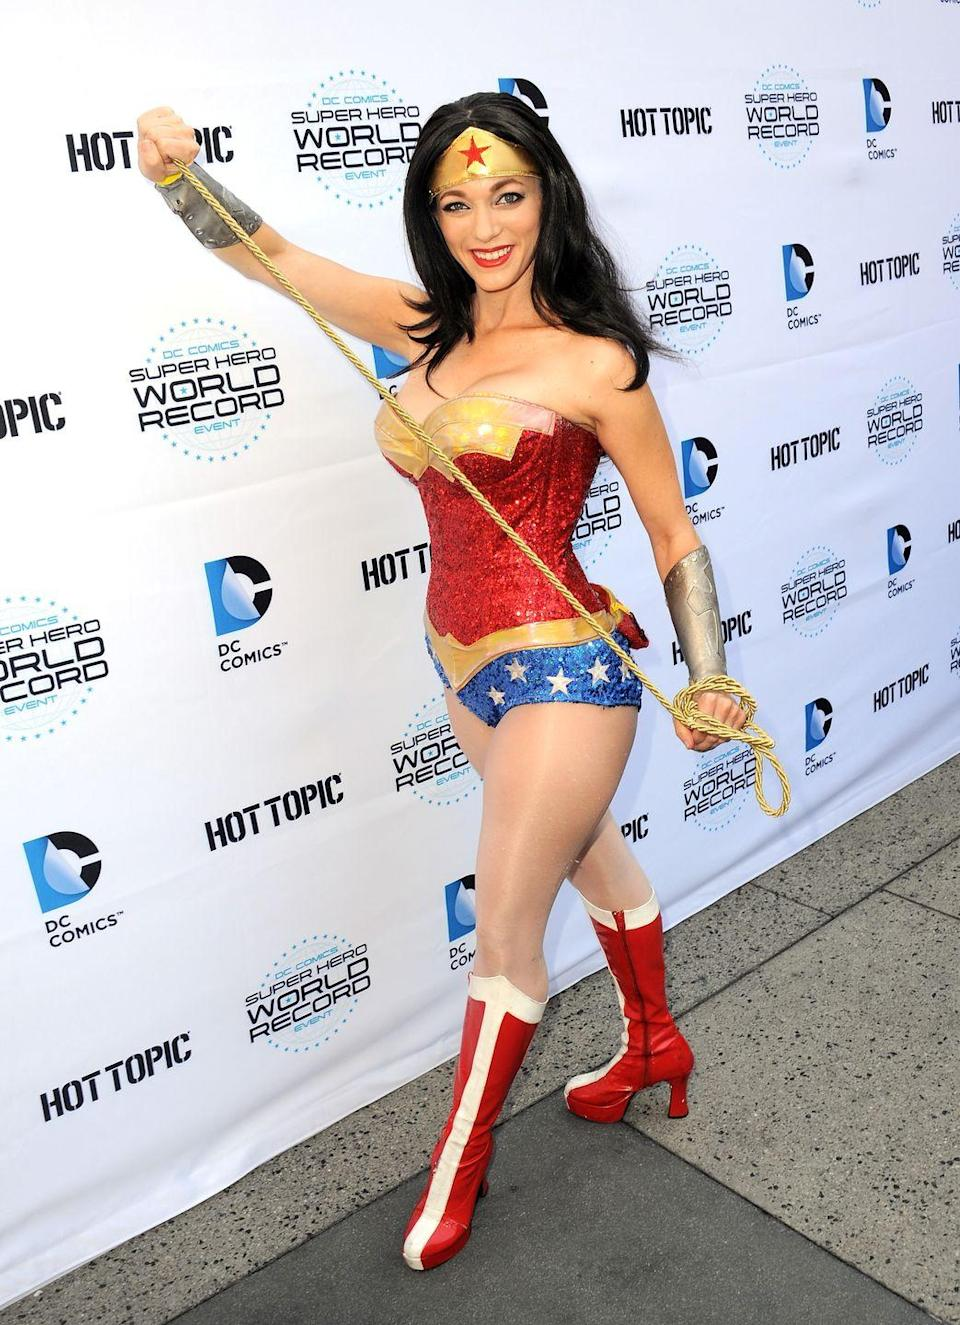 """<p>Wonder Woman is a timeless costume, but you can bring some '70s flair by dressing up as the Lynda Carter version of the Amazonian crime fighter. </p><p><a class=""""link rapid-noclick-resp"""" href=""""https://www.amazon.com/Costume-Superhero-Cosplay-Bodysuit-Headband/dp/B083HNFZT2?tag=syn-yahoo-20&ascsubtag=%5Bartid%7C10070.g.23122163%5Bsrc%7Cyahoo-us"""" rel=""""nofollow noopener"""" target=""""_blank"""" data-ylk=""""slk:SHOP LEOTARD"""">SHOP LEOTARD</a></p>"""